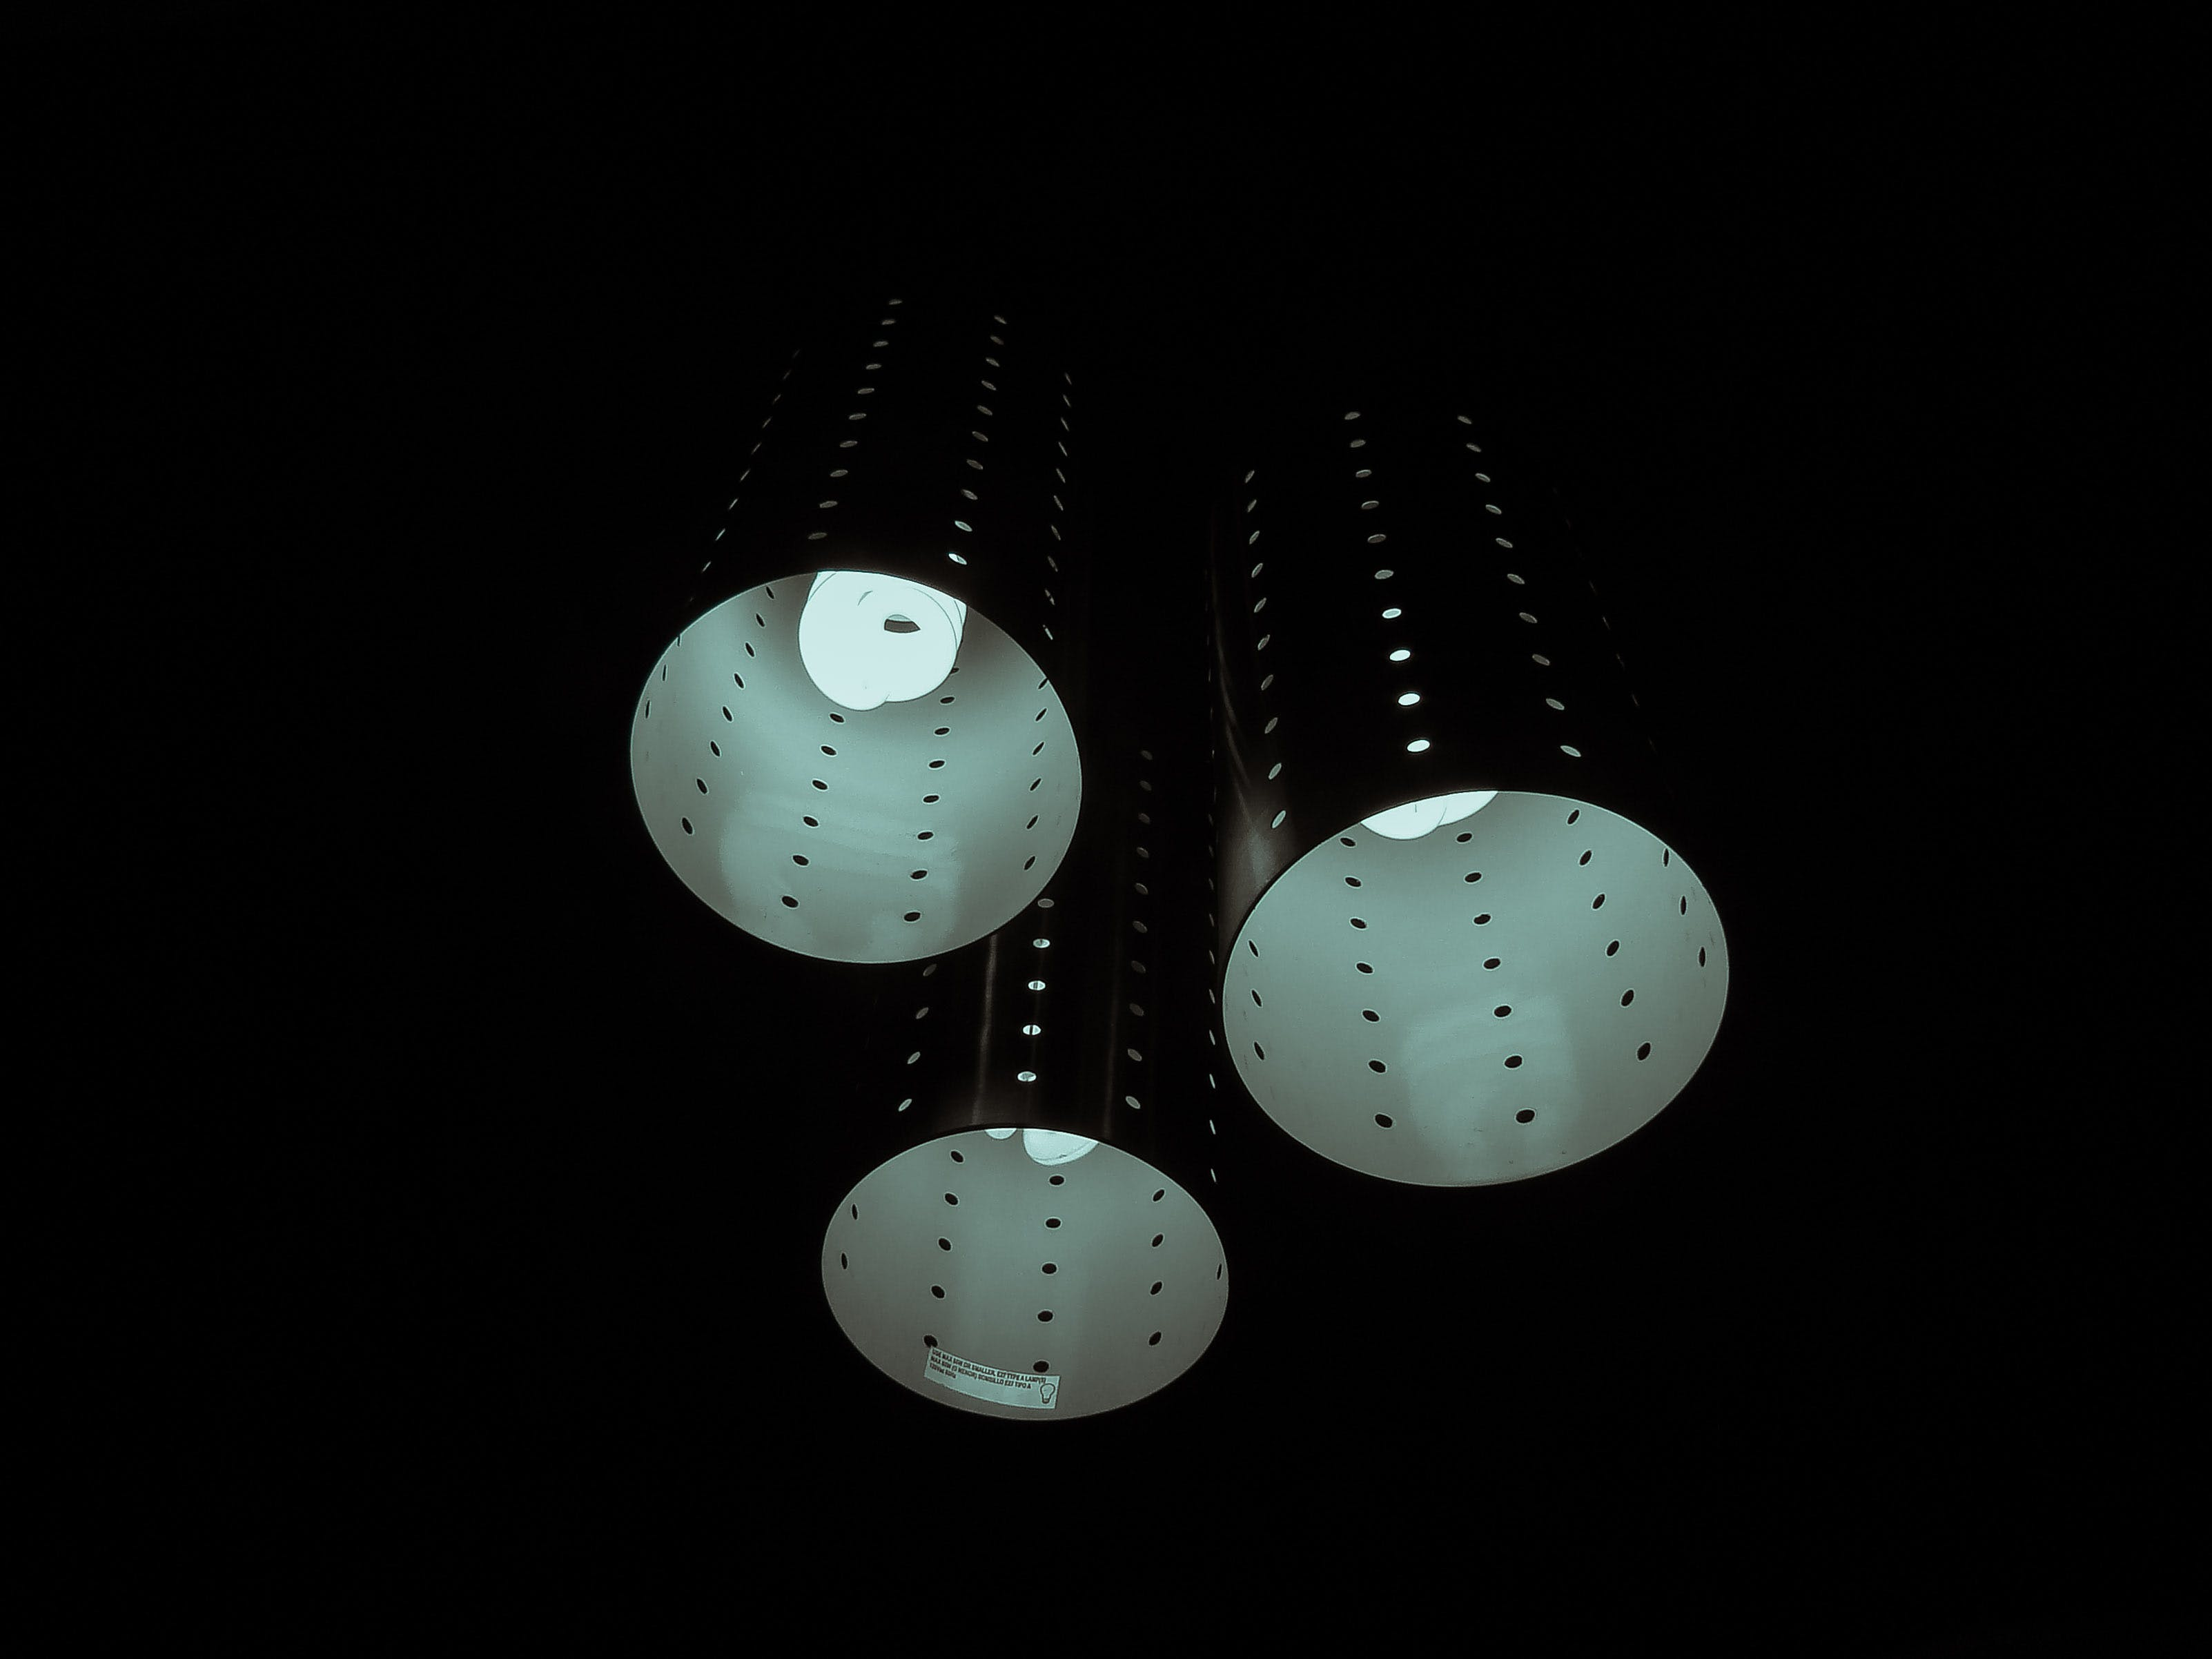 Photography of Three Lamps on Dark Room